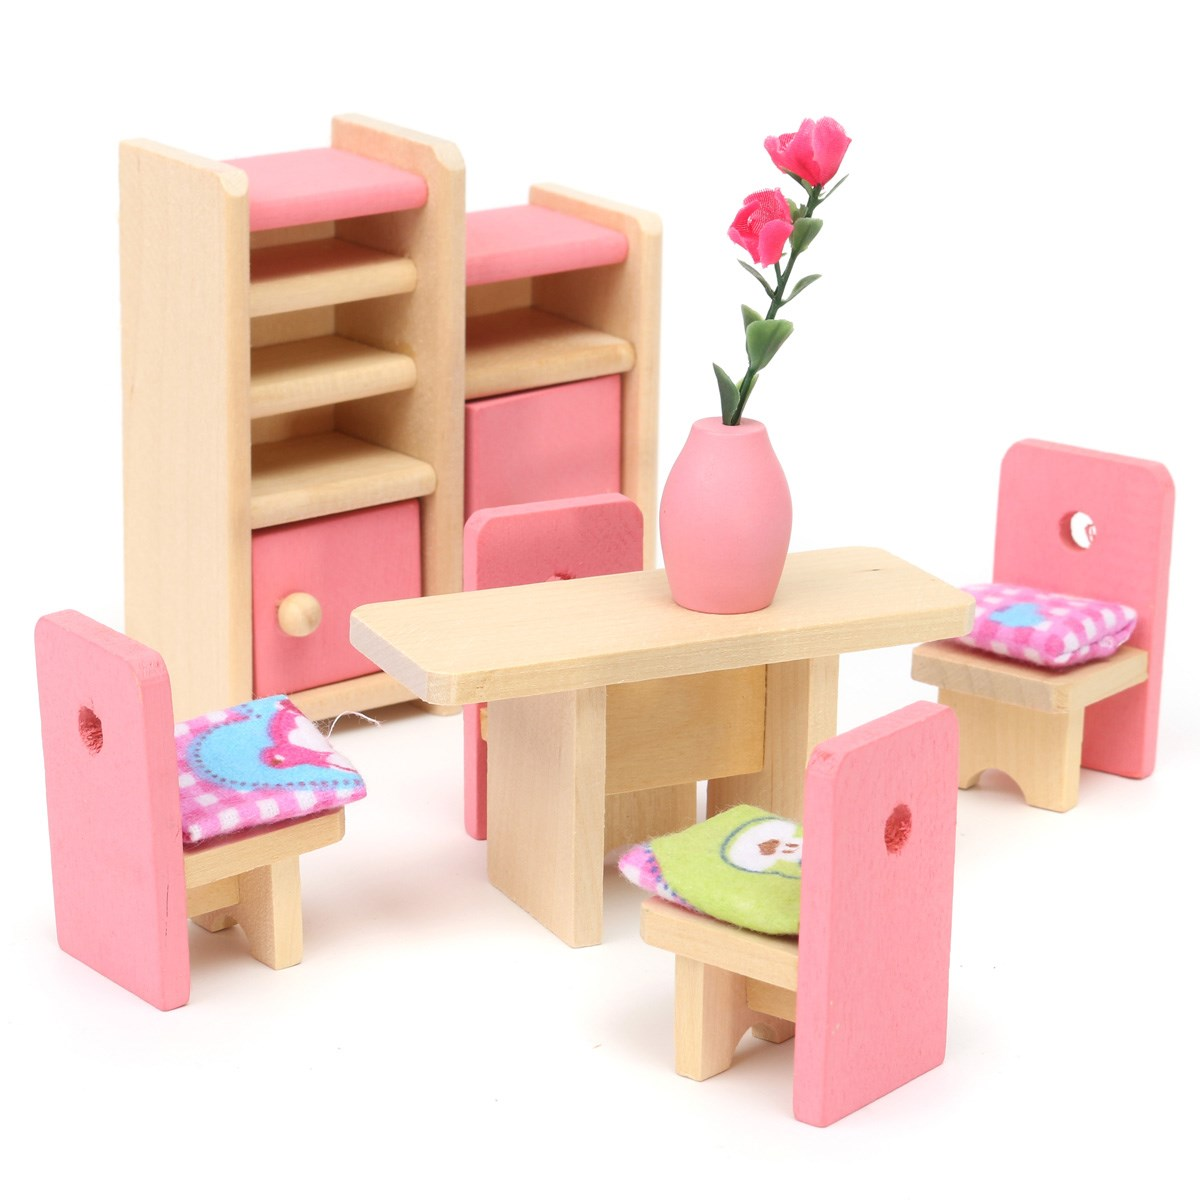 Furniture Cheap Online: Online Get Cheap Dollhouse Furniture -Aliexpress.com